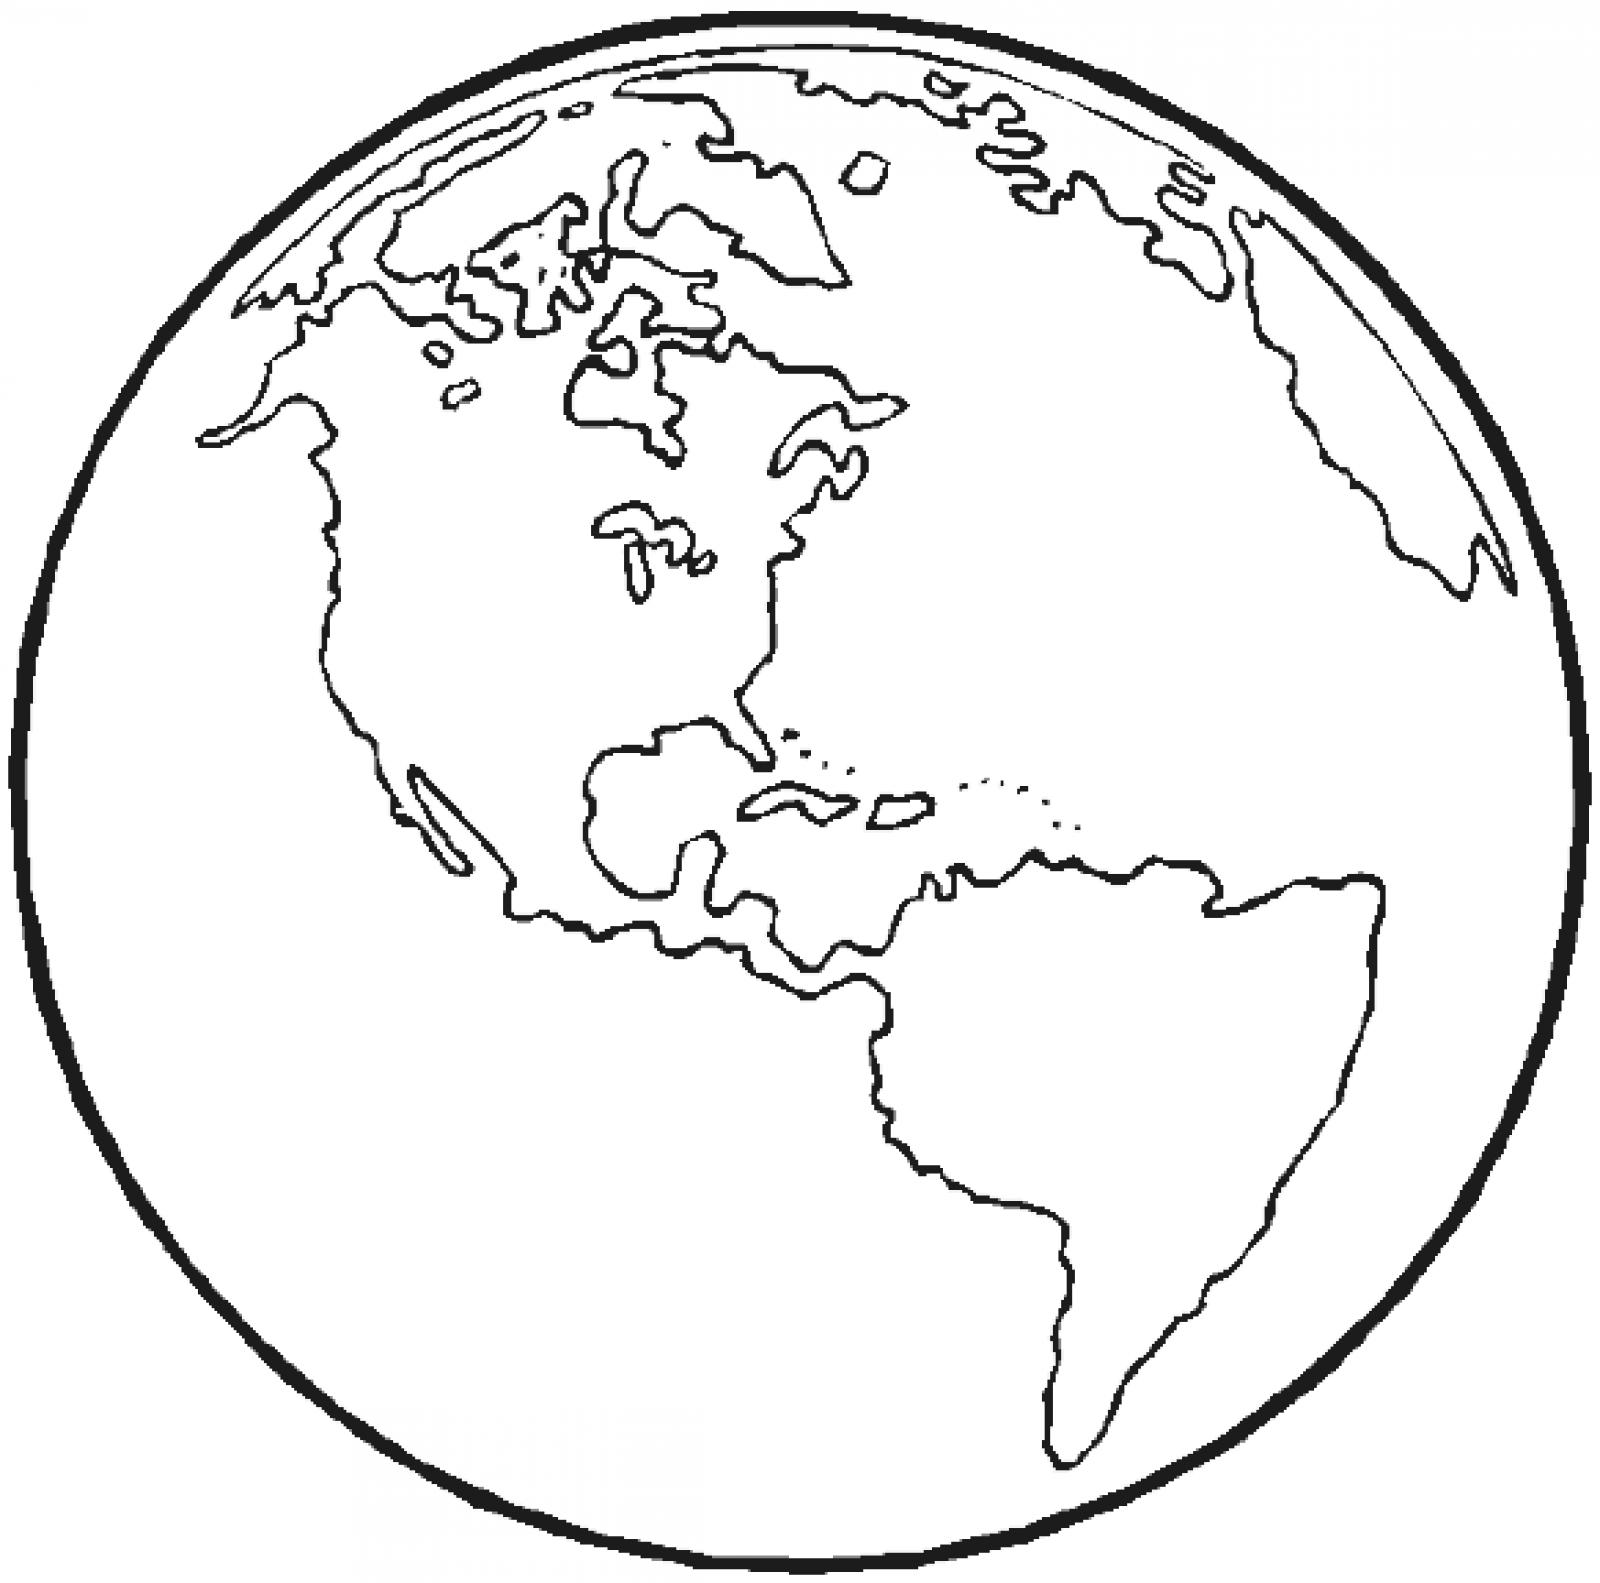 Free Printable Earth Coloring Pages For Kids The Coloring Pages